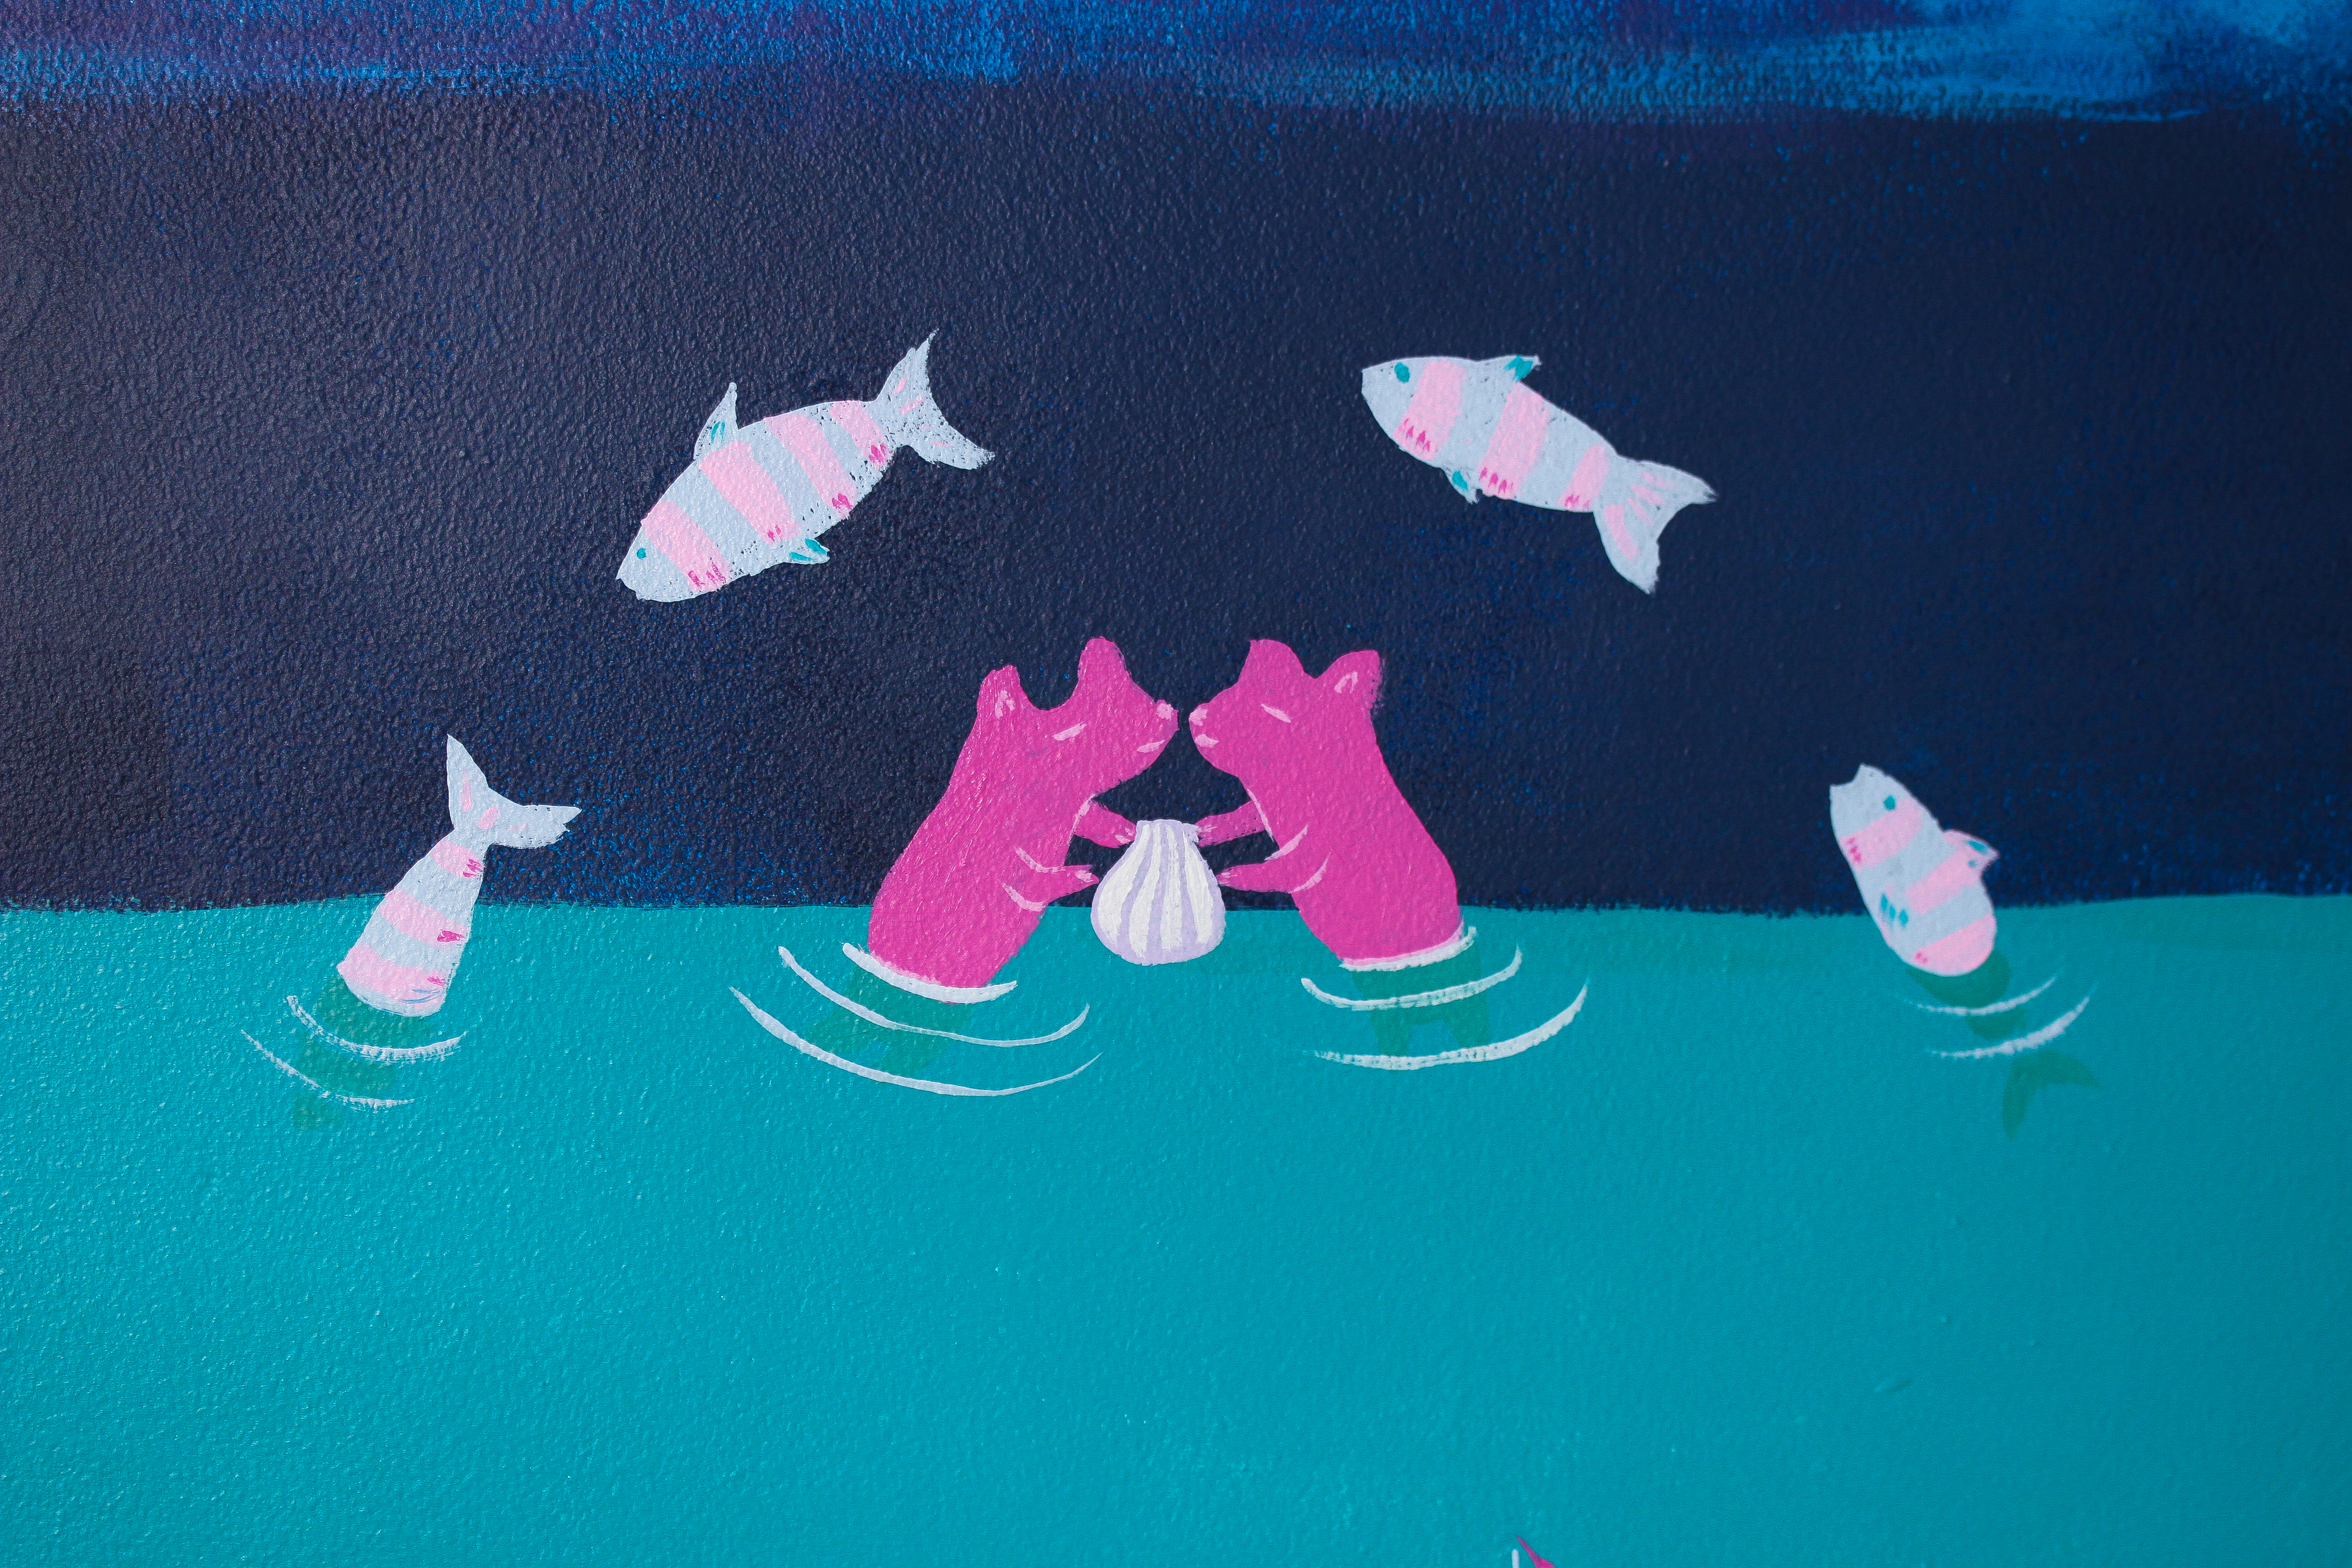 mural detail: otters sharing a clam under an arch of jumping fish